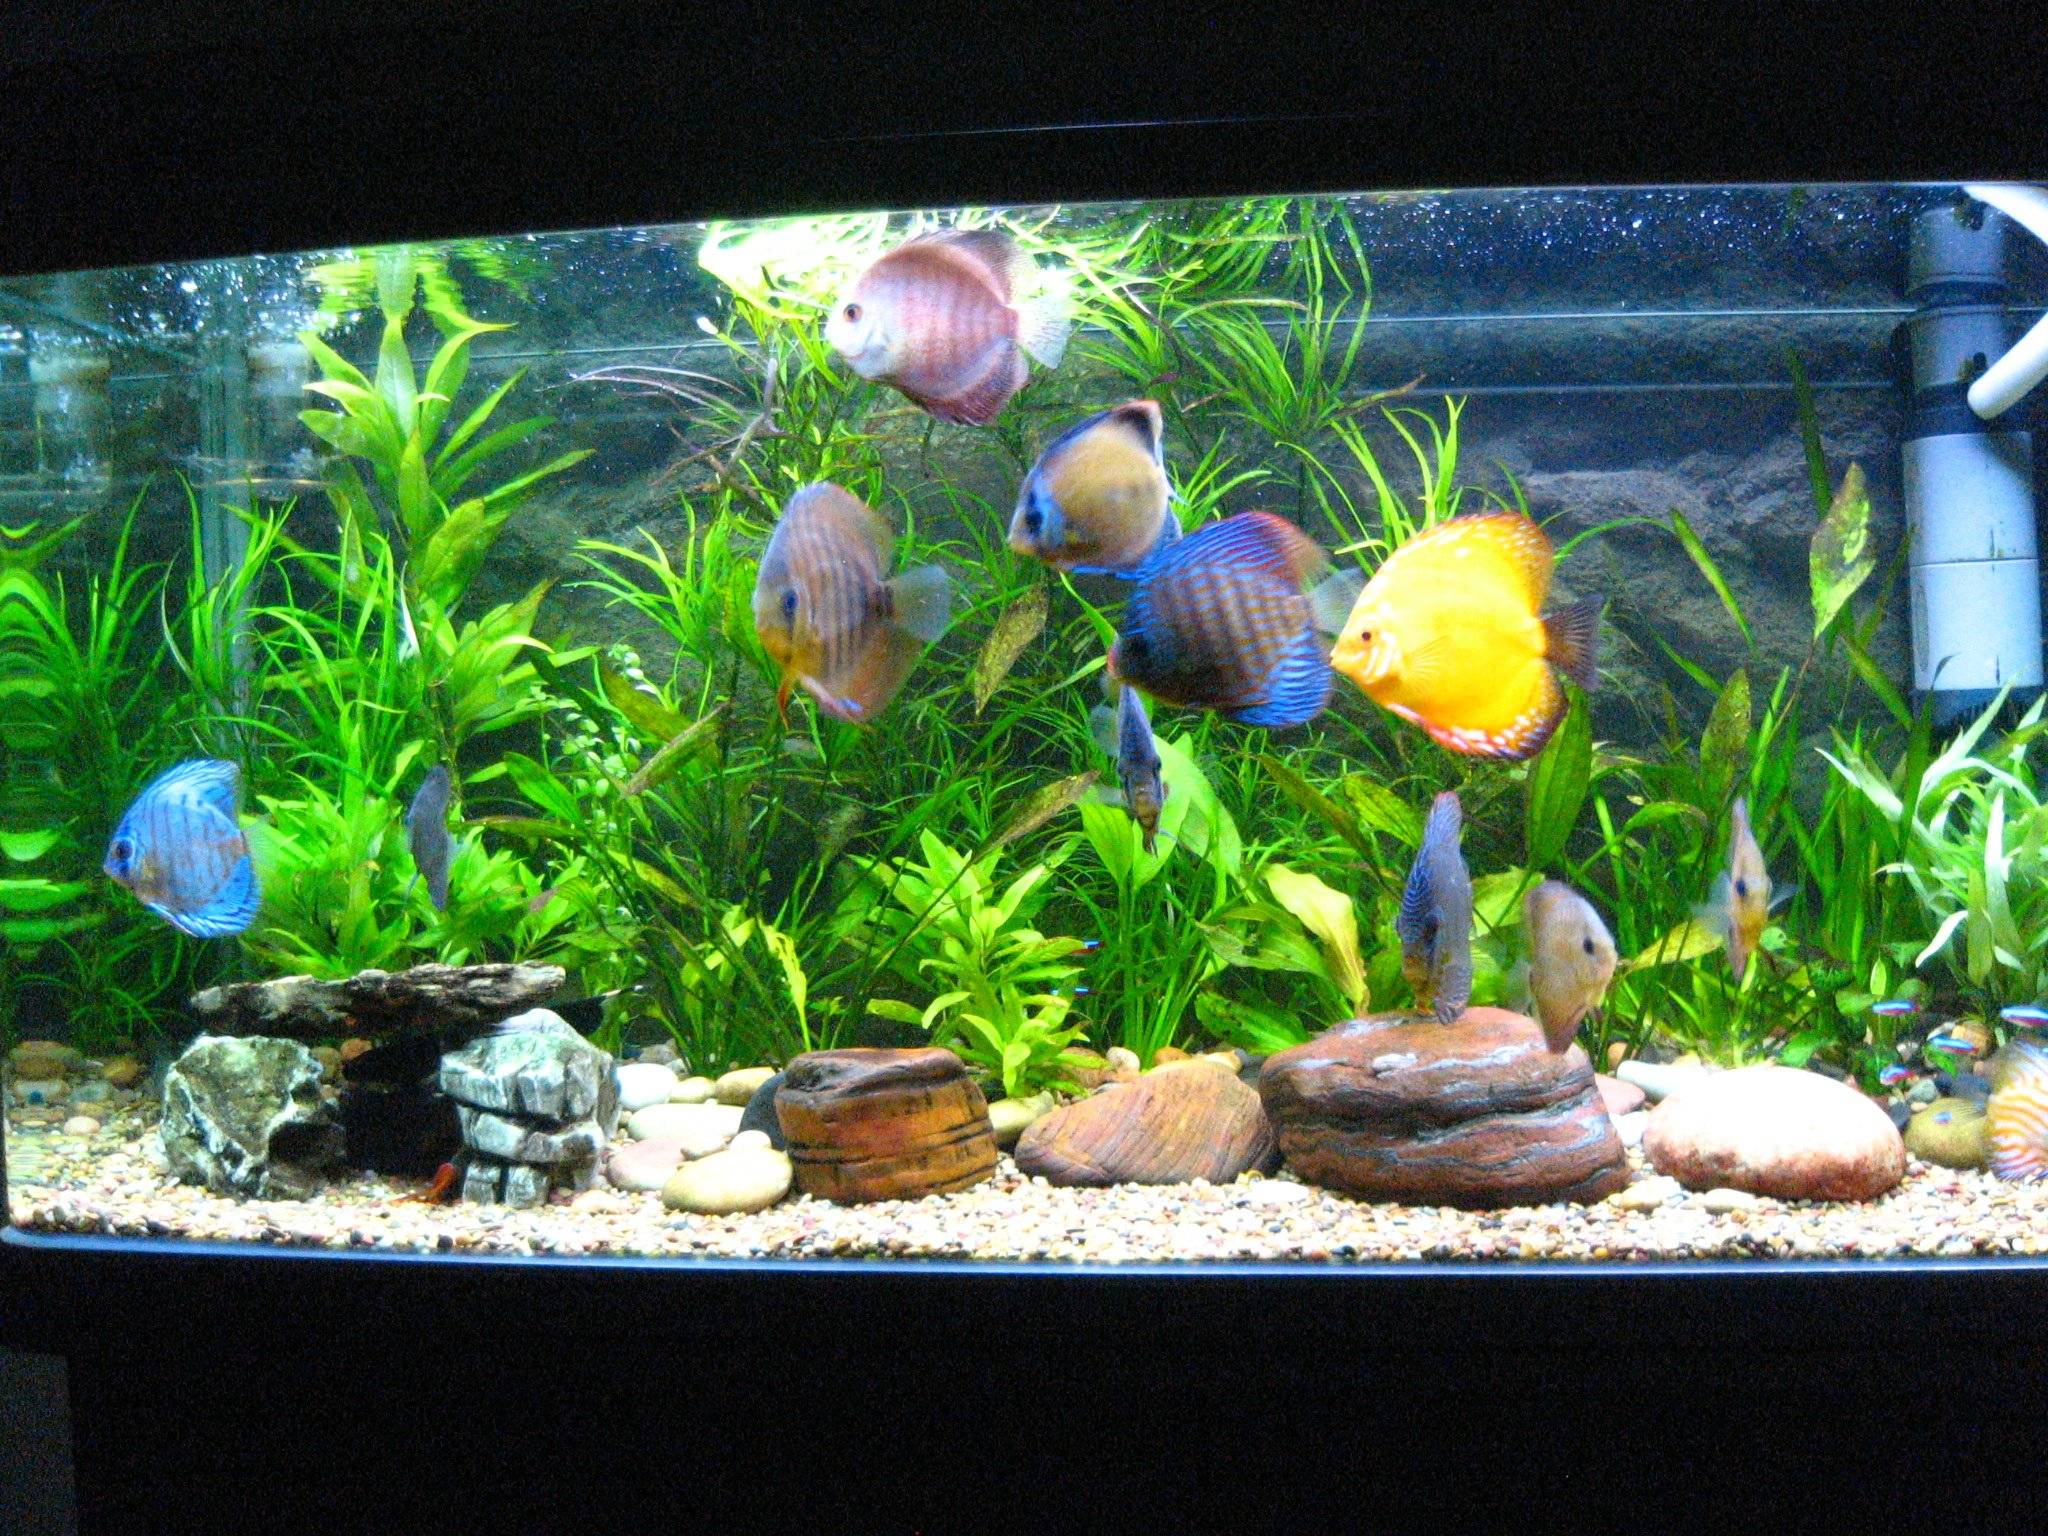 Contest - Aquarium Pictures